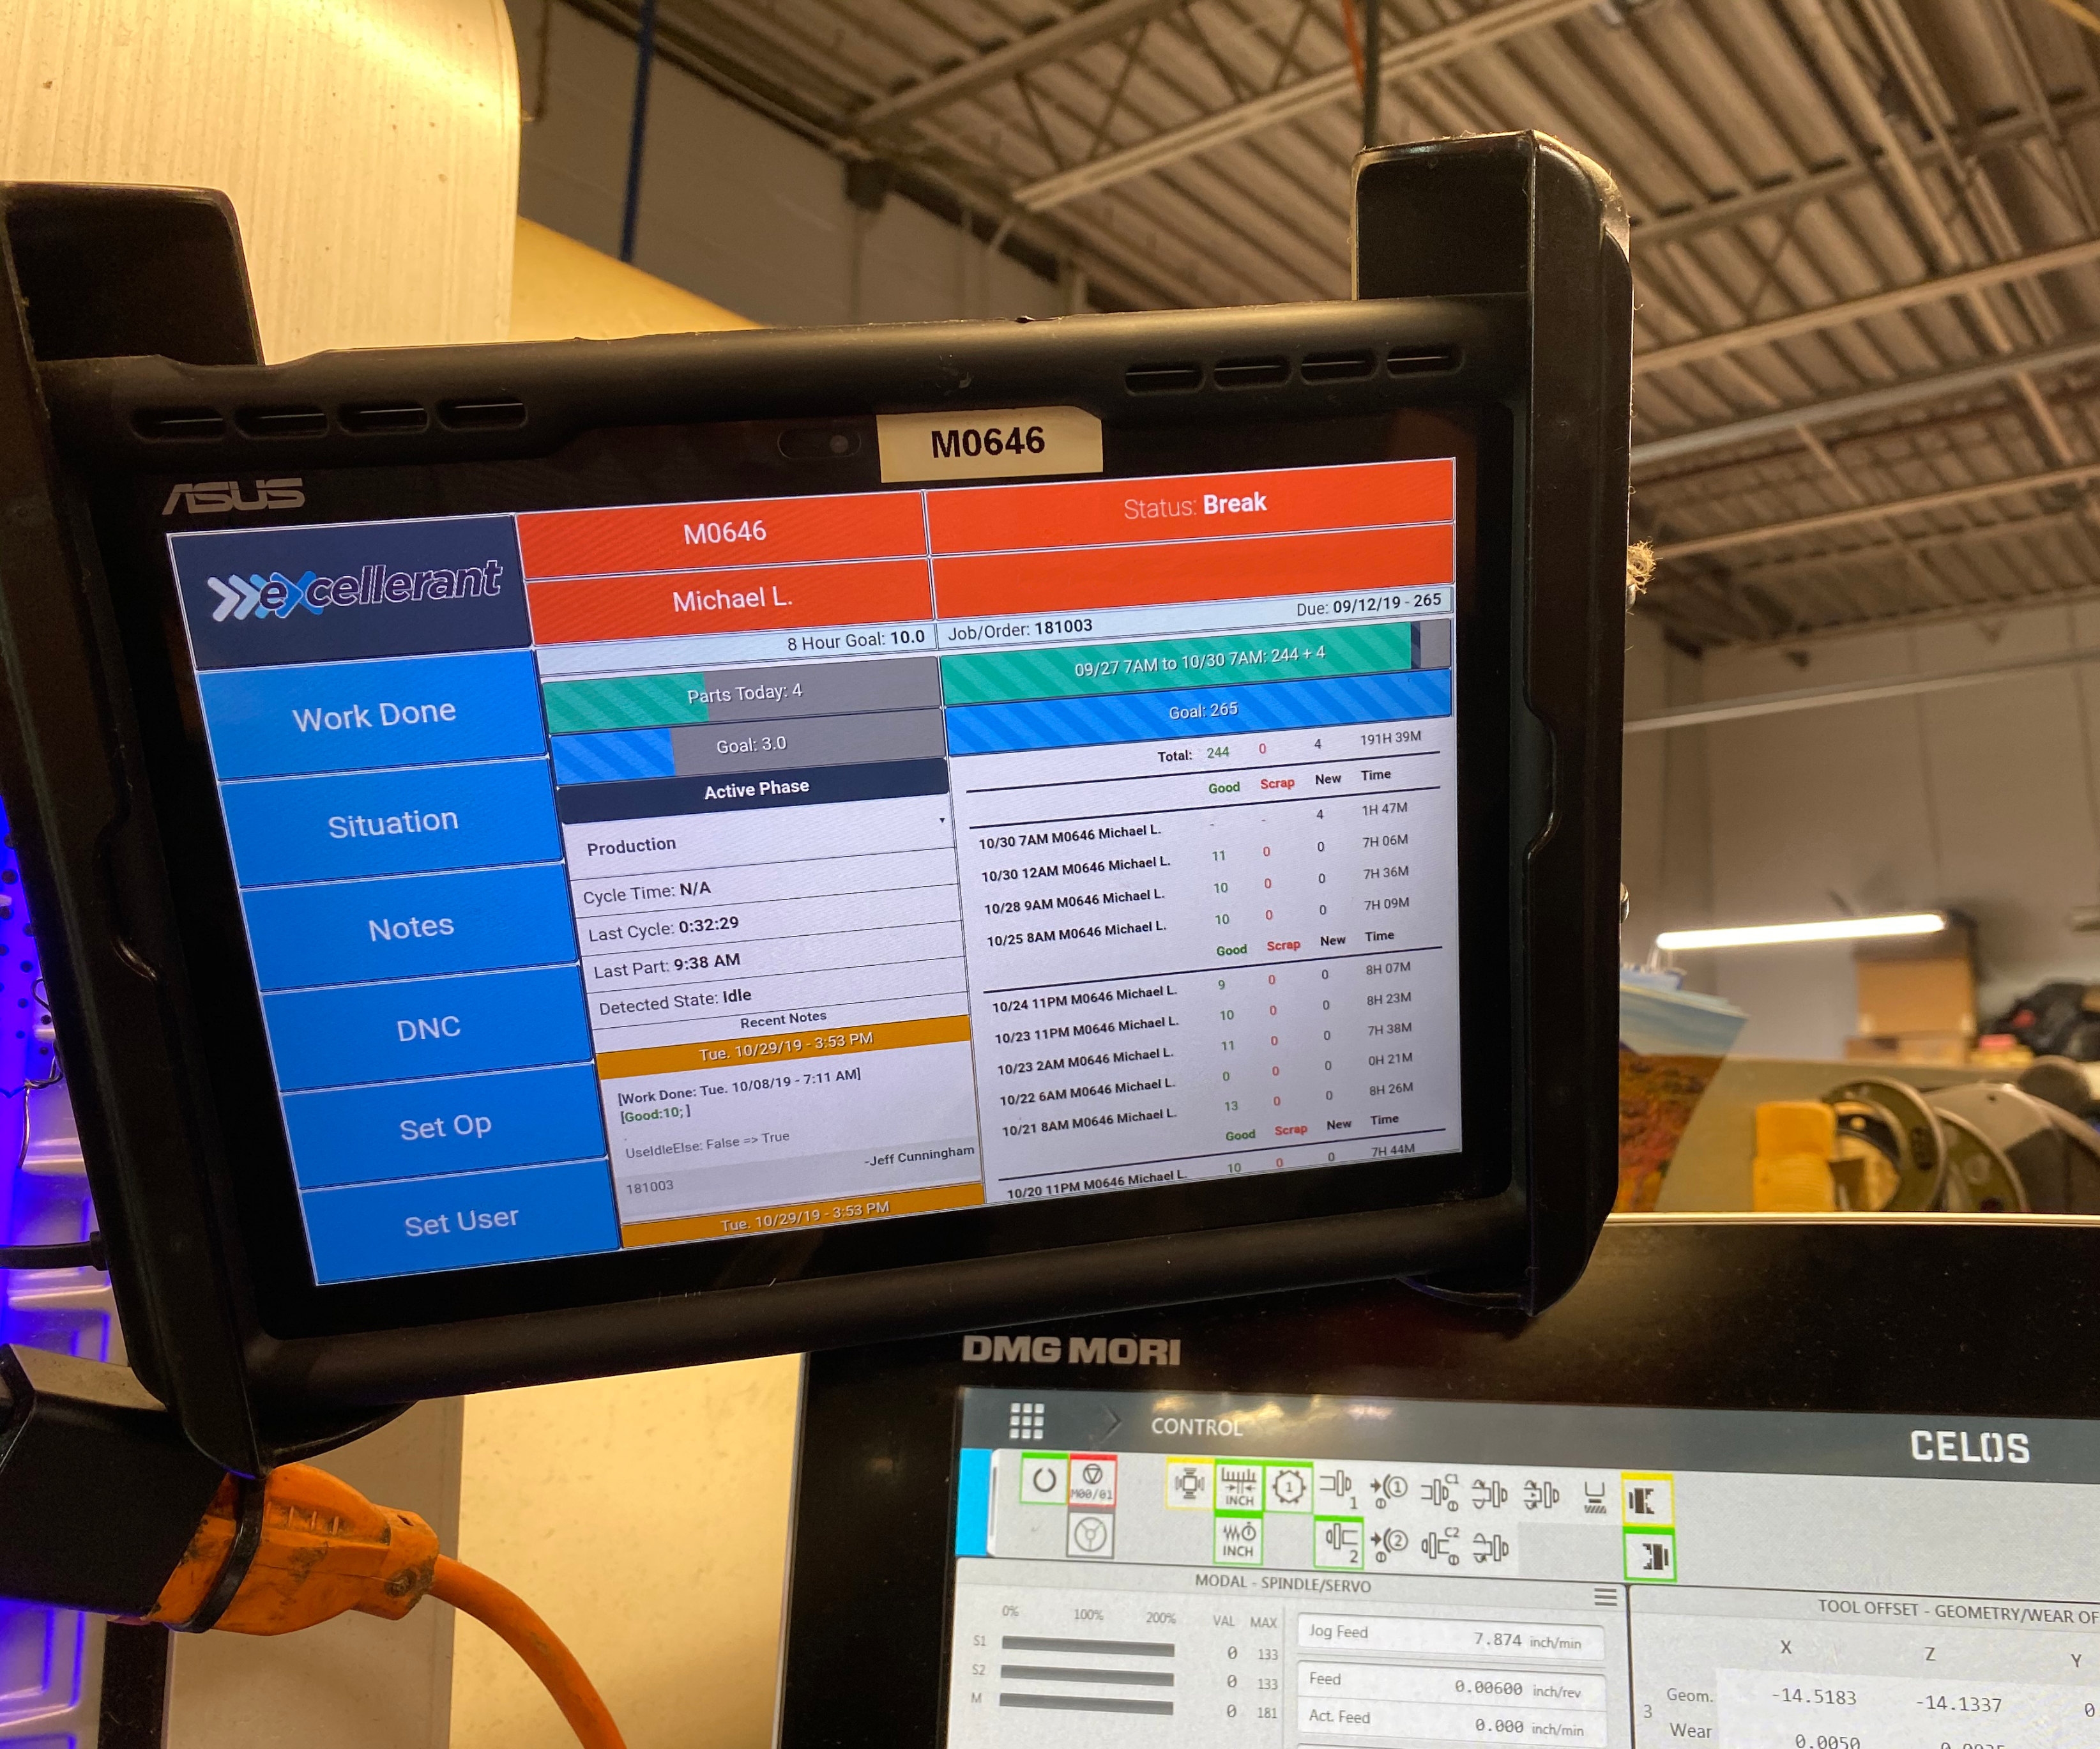 A tablet mounted near the CNC of a machine tool at McMellon Bros., an aerospace machine shop in Stratford, CT, provides enables shop floor personnel to interface with the company's machine monitoring system, Excellerant MDC.